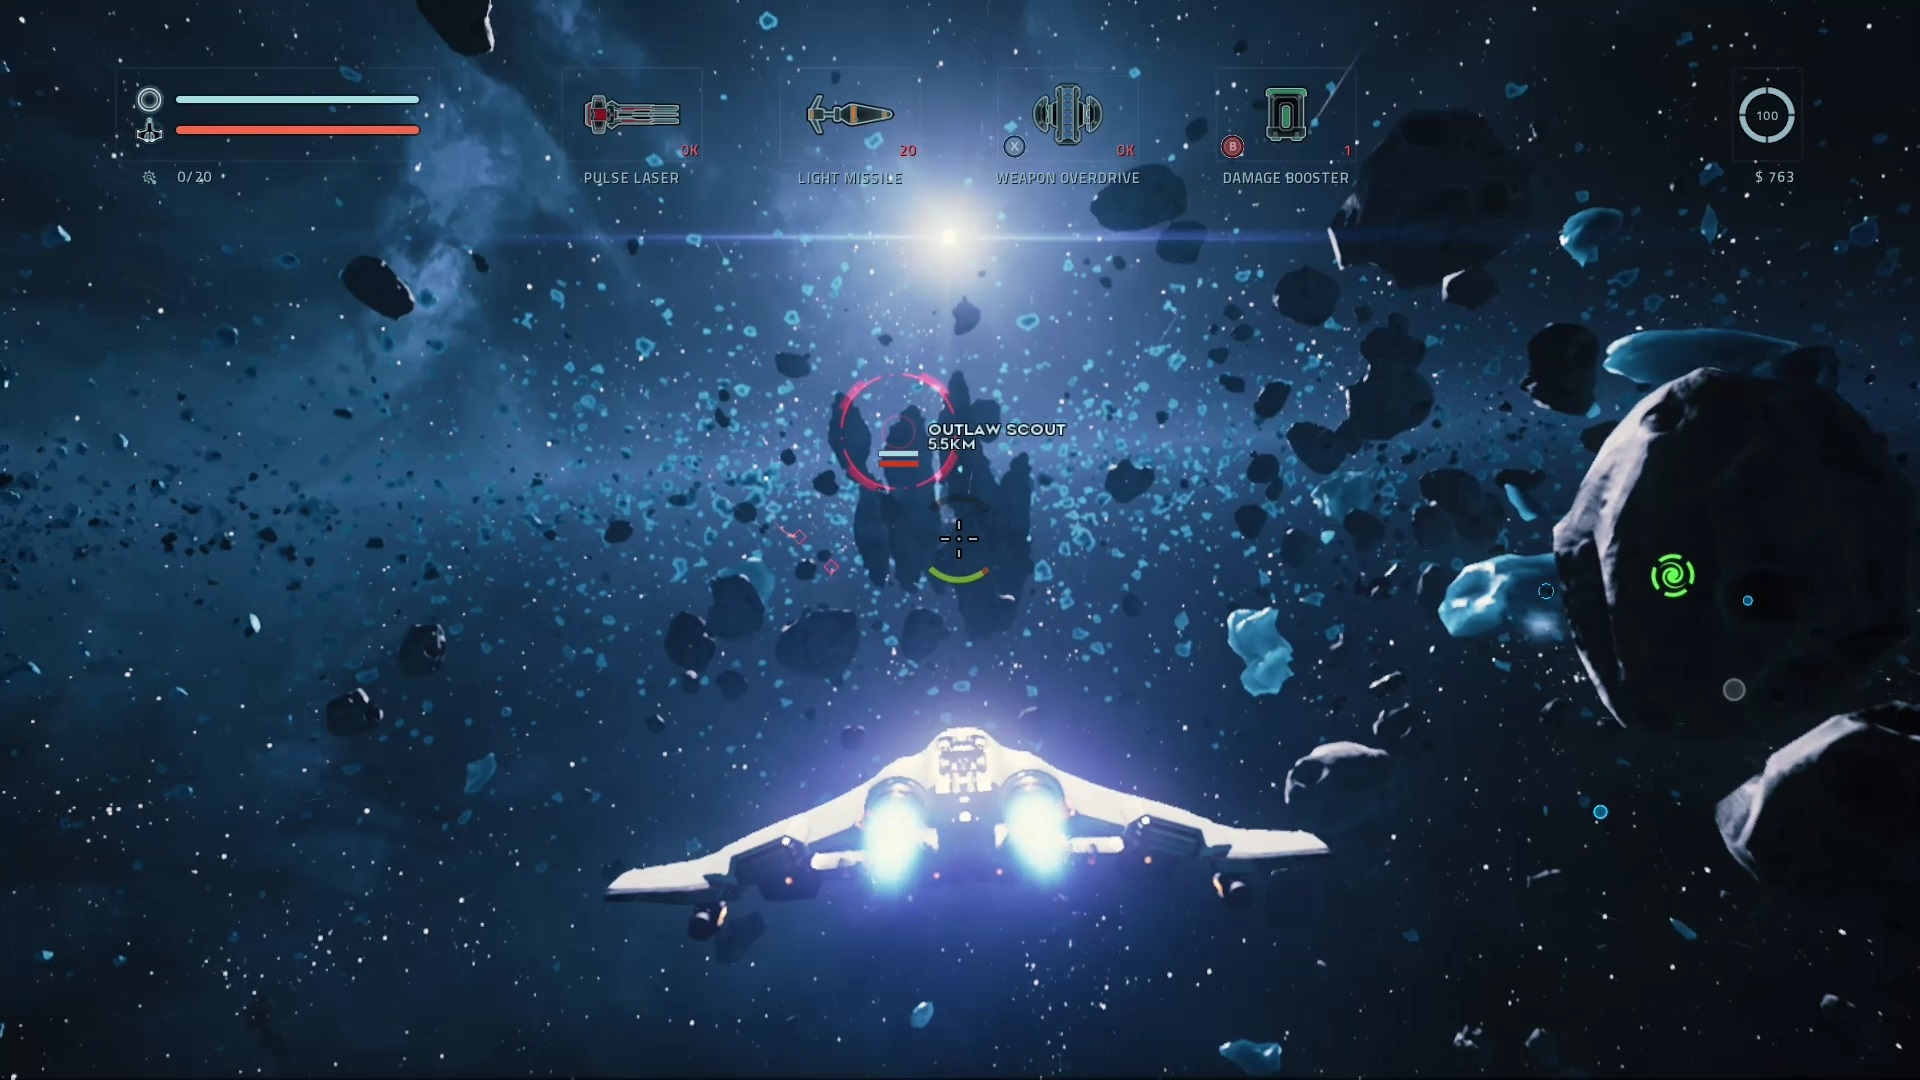 About to engage Outlaws in Everspace